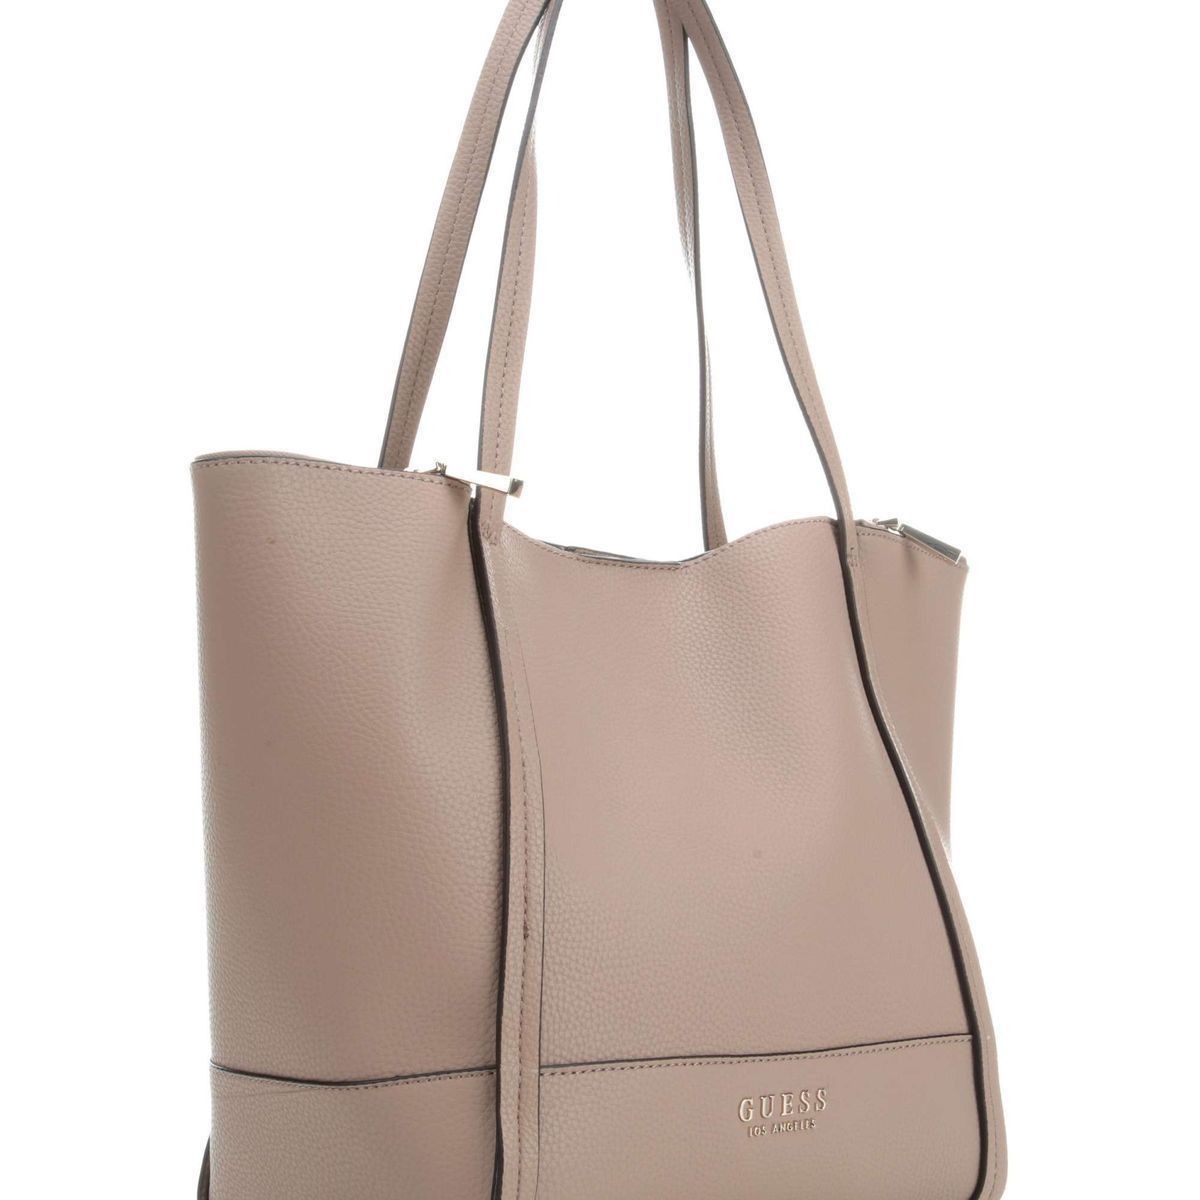 Guess femme heidi tote taupe1120001_5